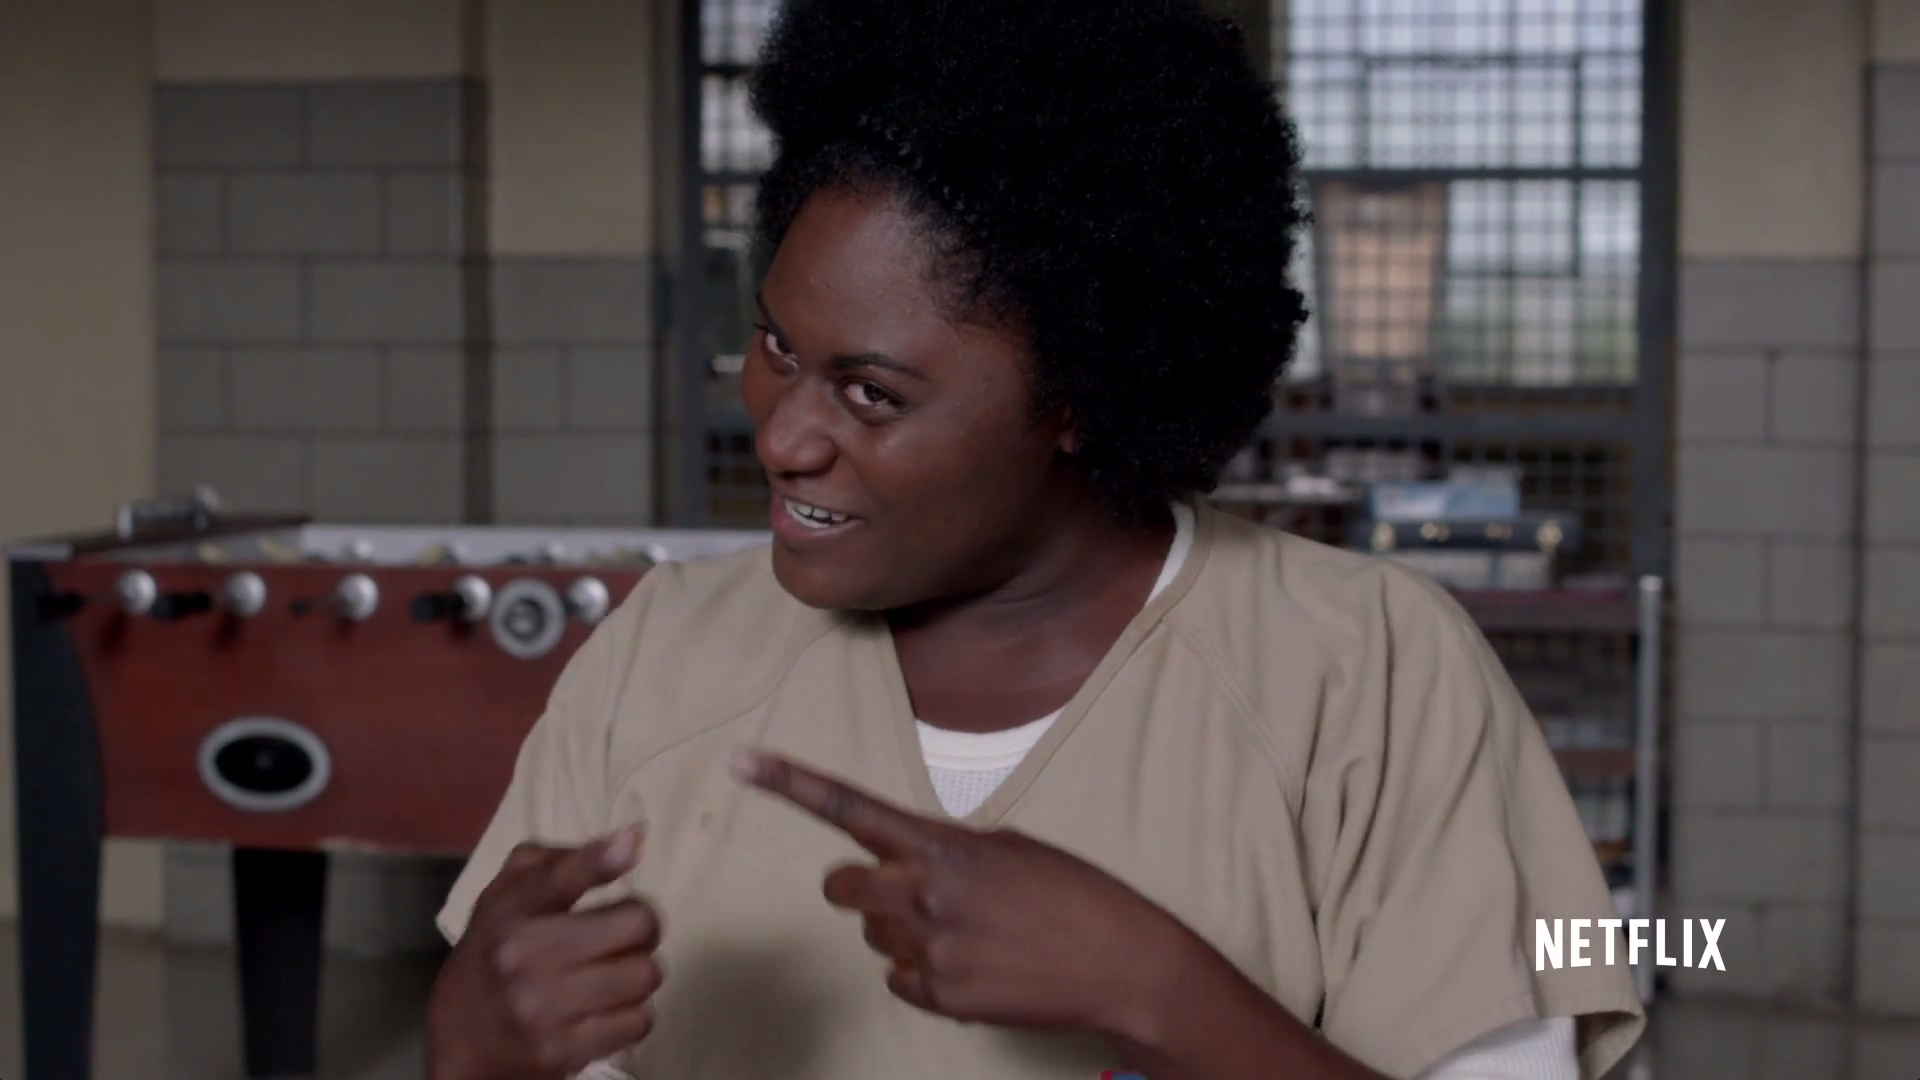 Most popular videos: 'Orange is the New Black,' 'The Rover' and Sonic the Hedgehog